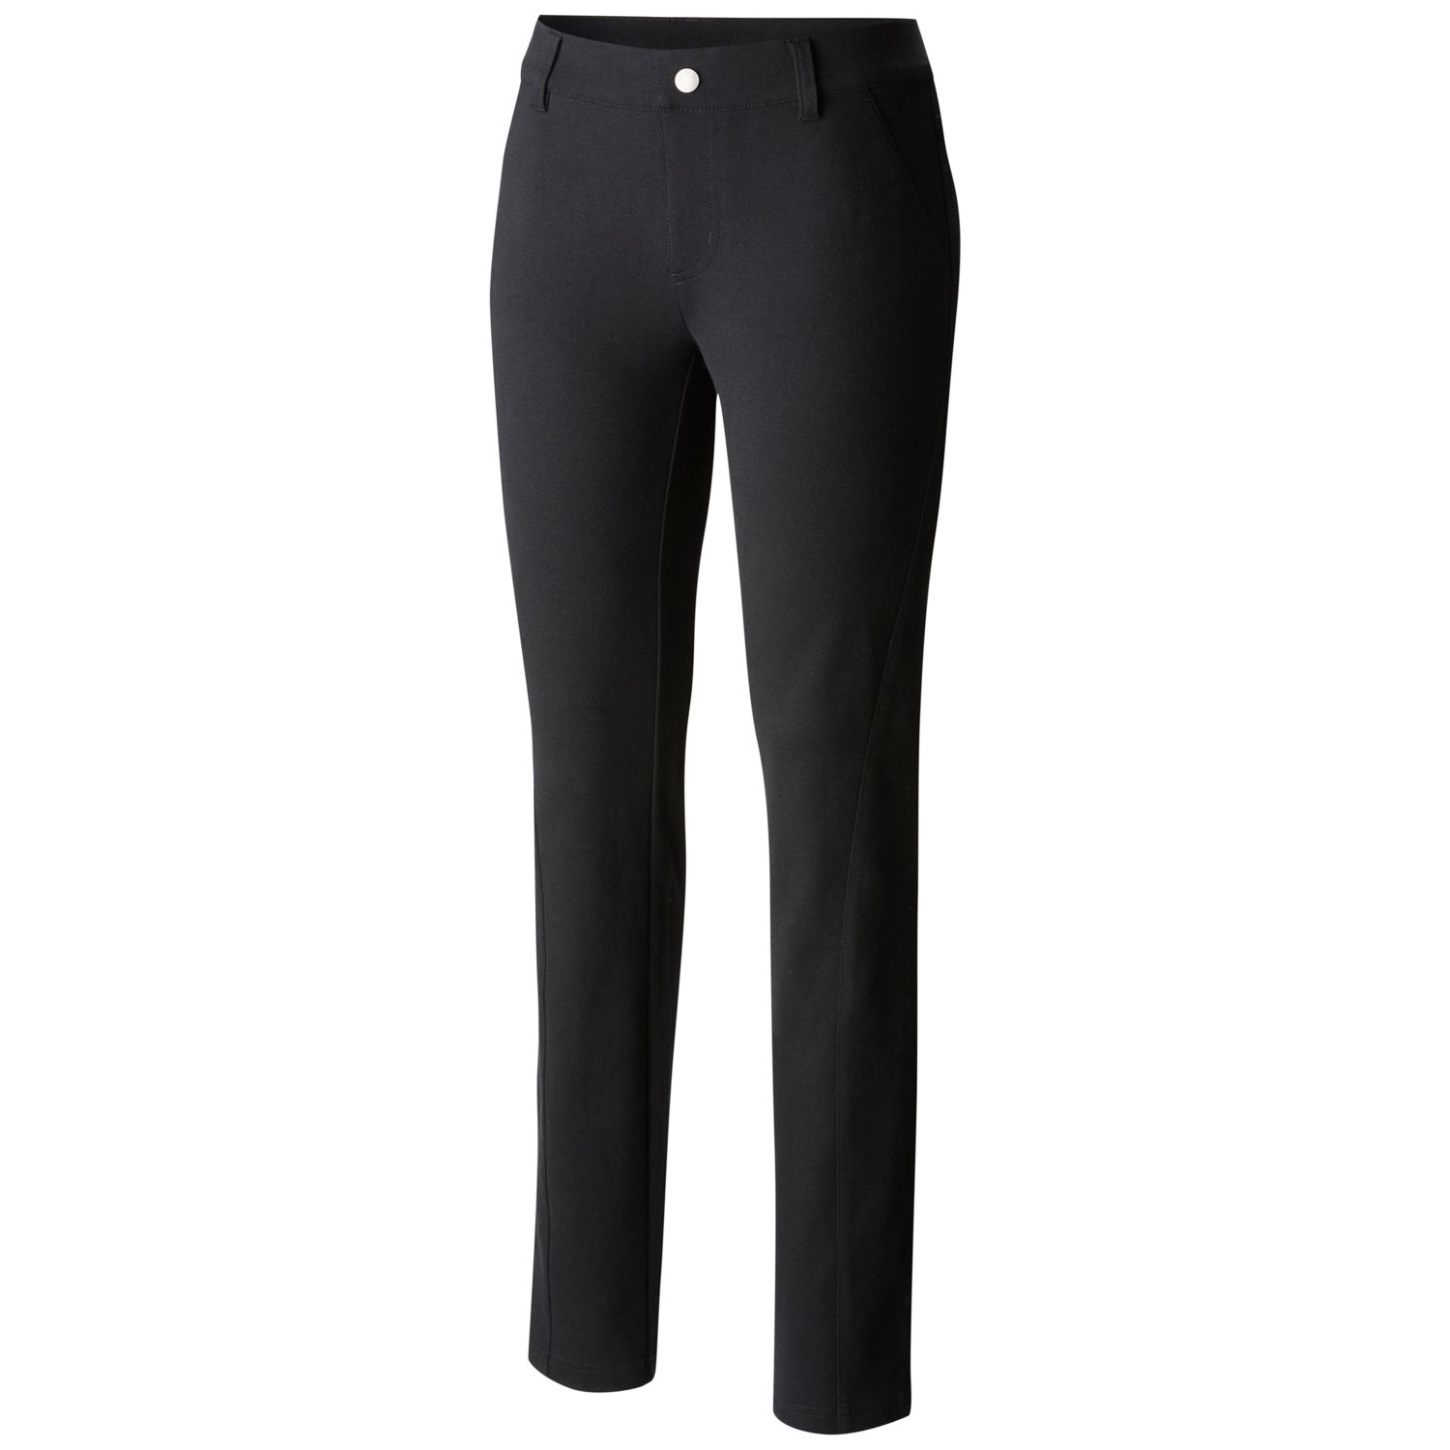 Columbia Outdoor Ponte Hosen für Damen Black-30